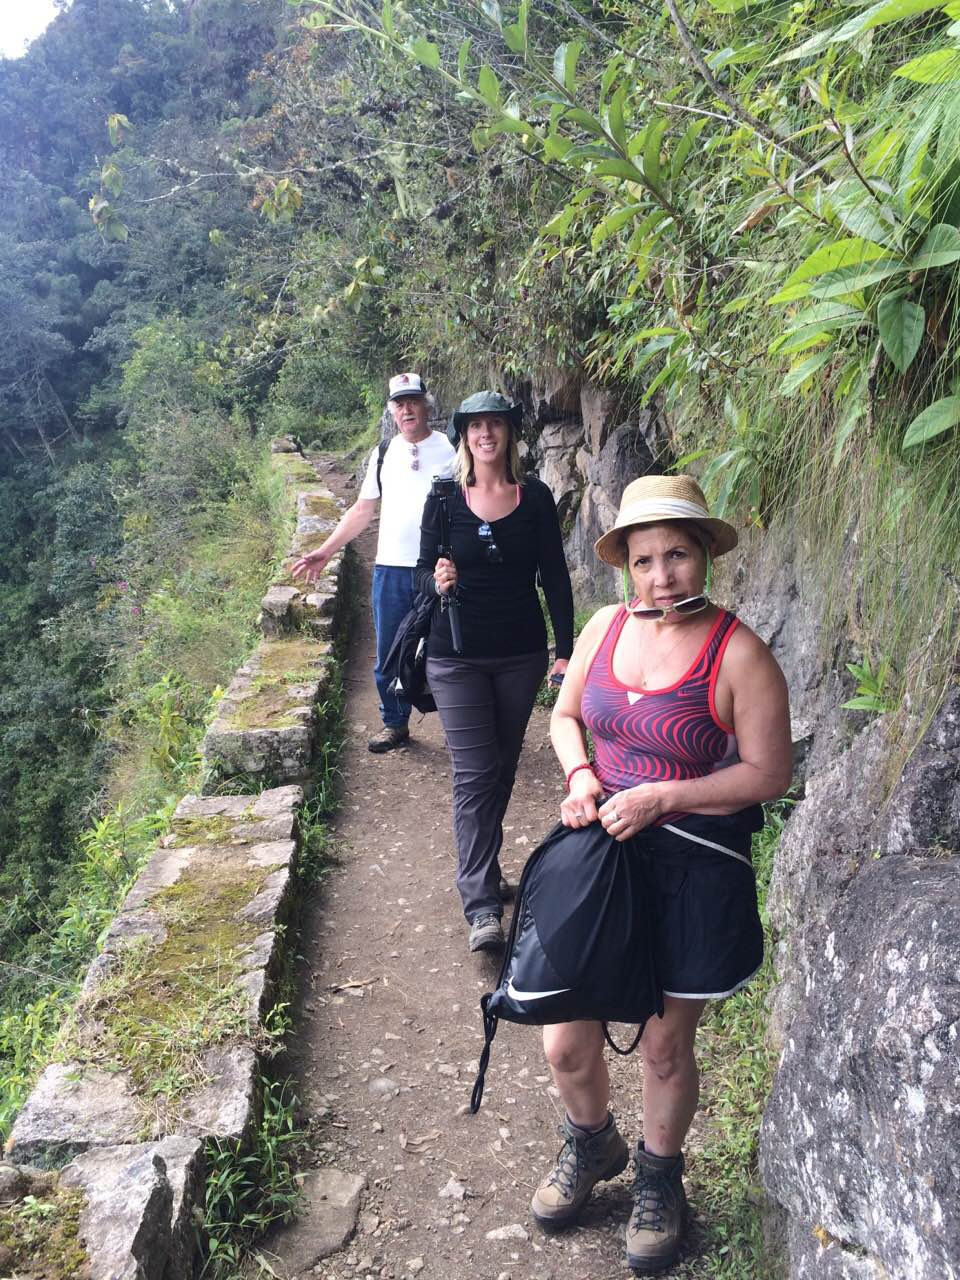 On our way to the Inca Bridge